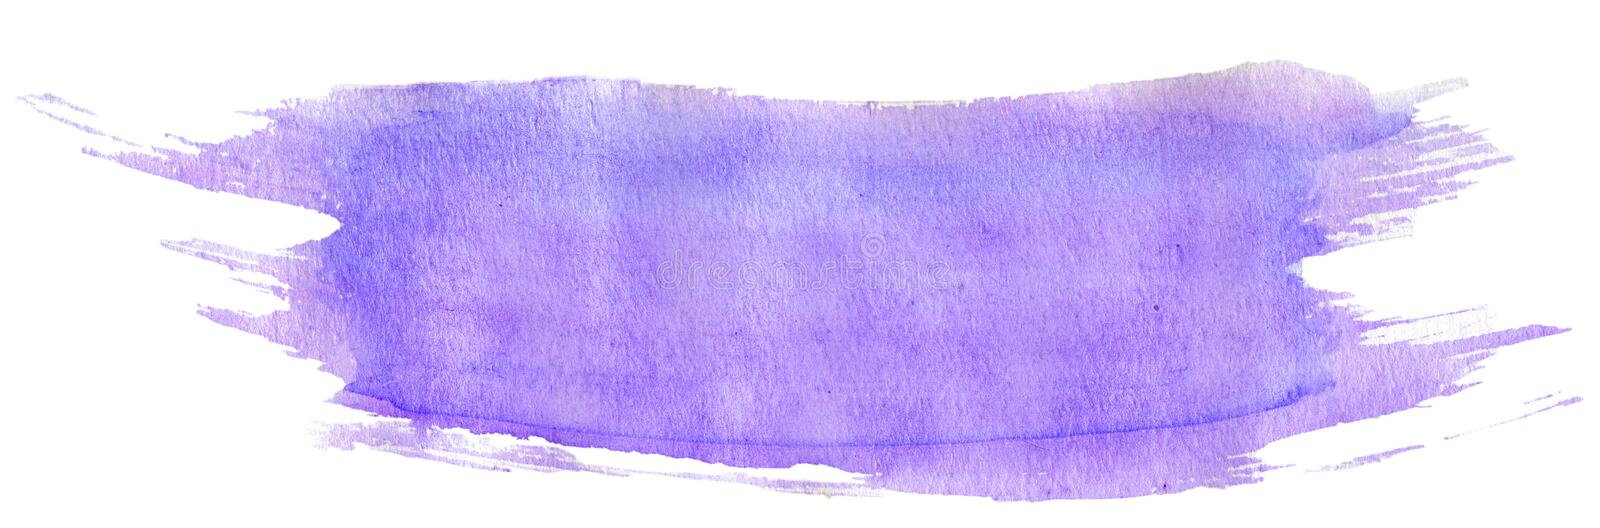 Light violet watercolor stroke with brush`s texture, hand-painted illustration royalty free illustration